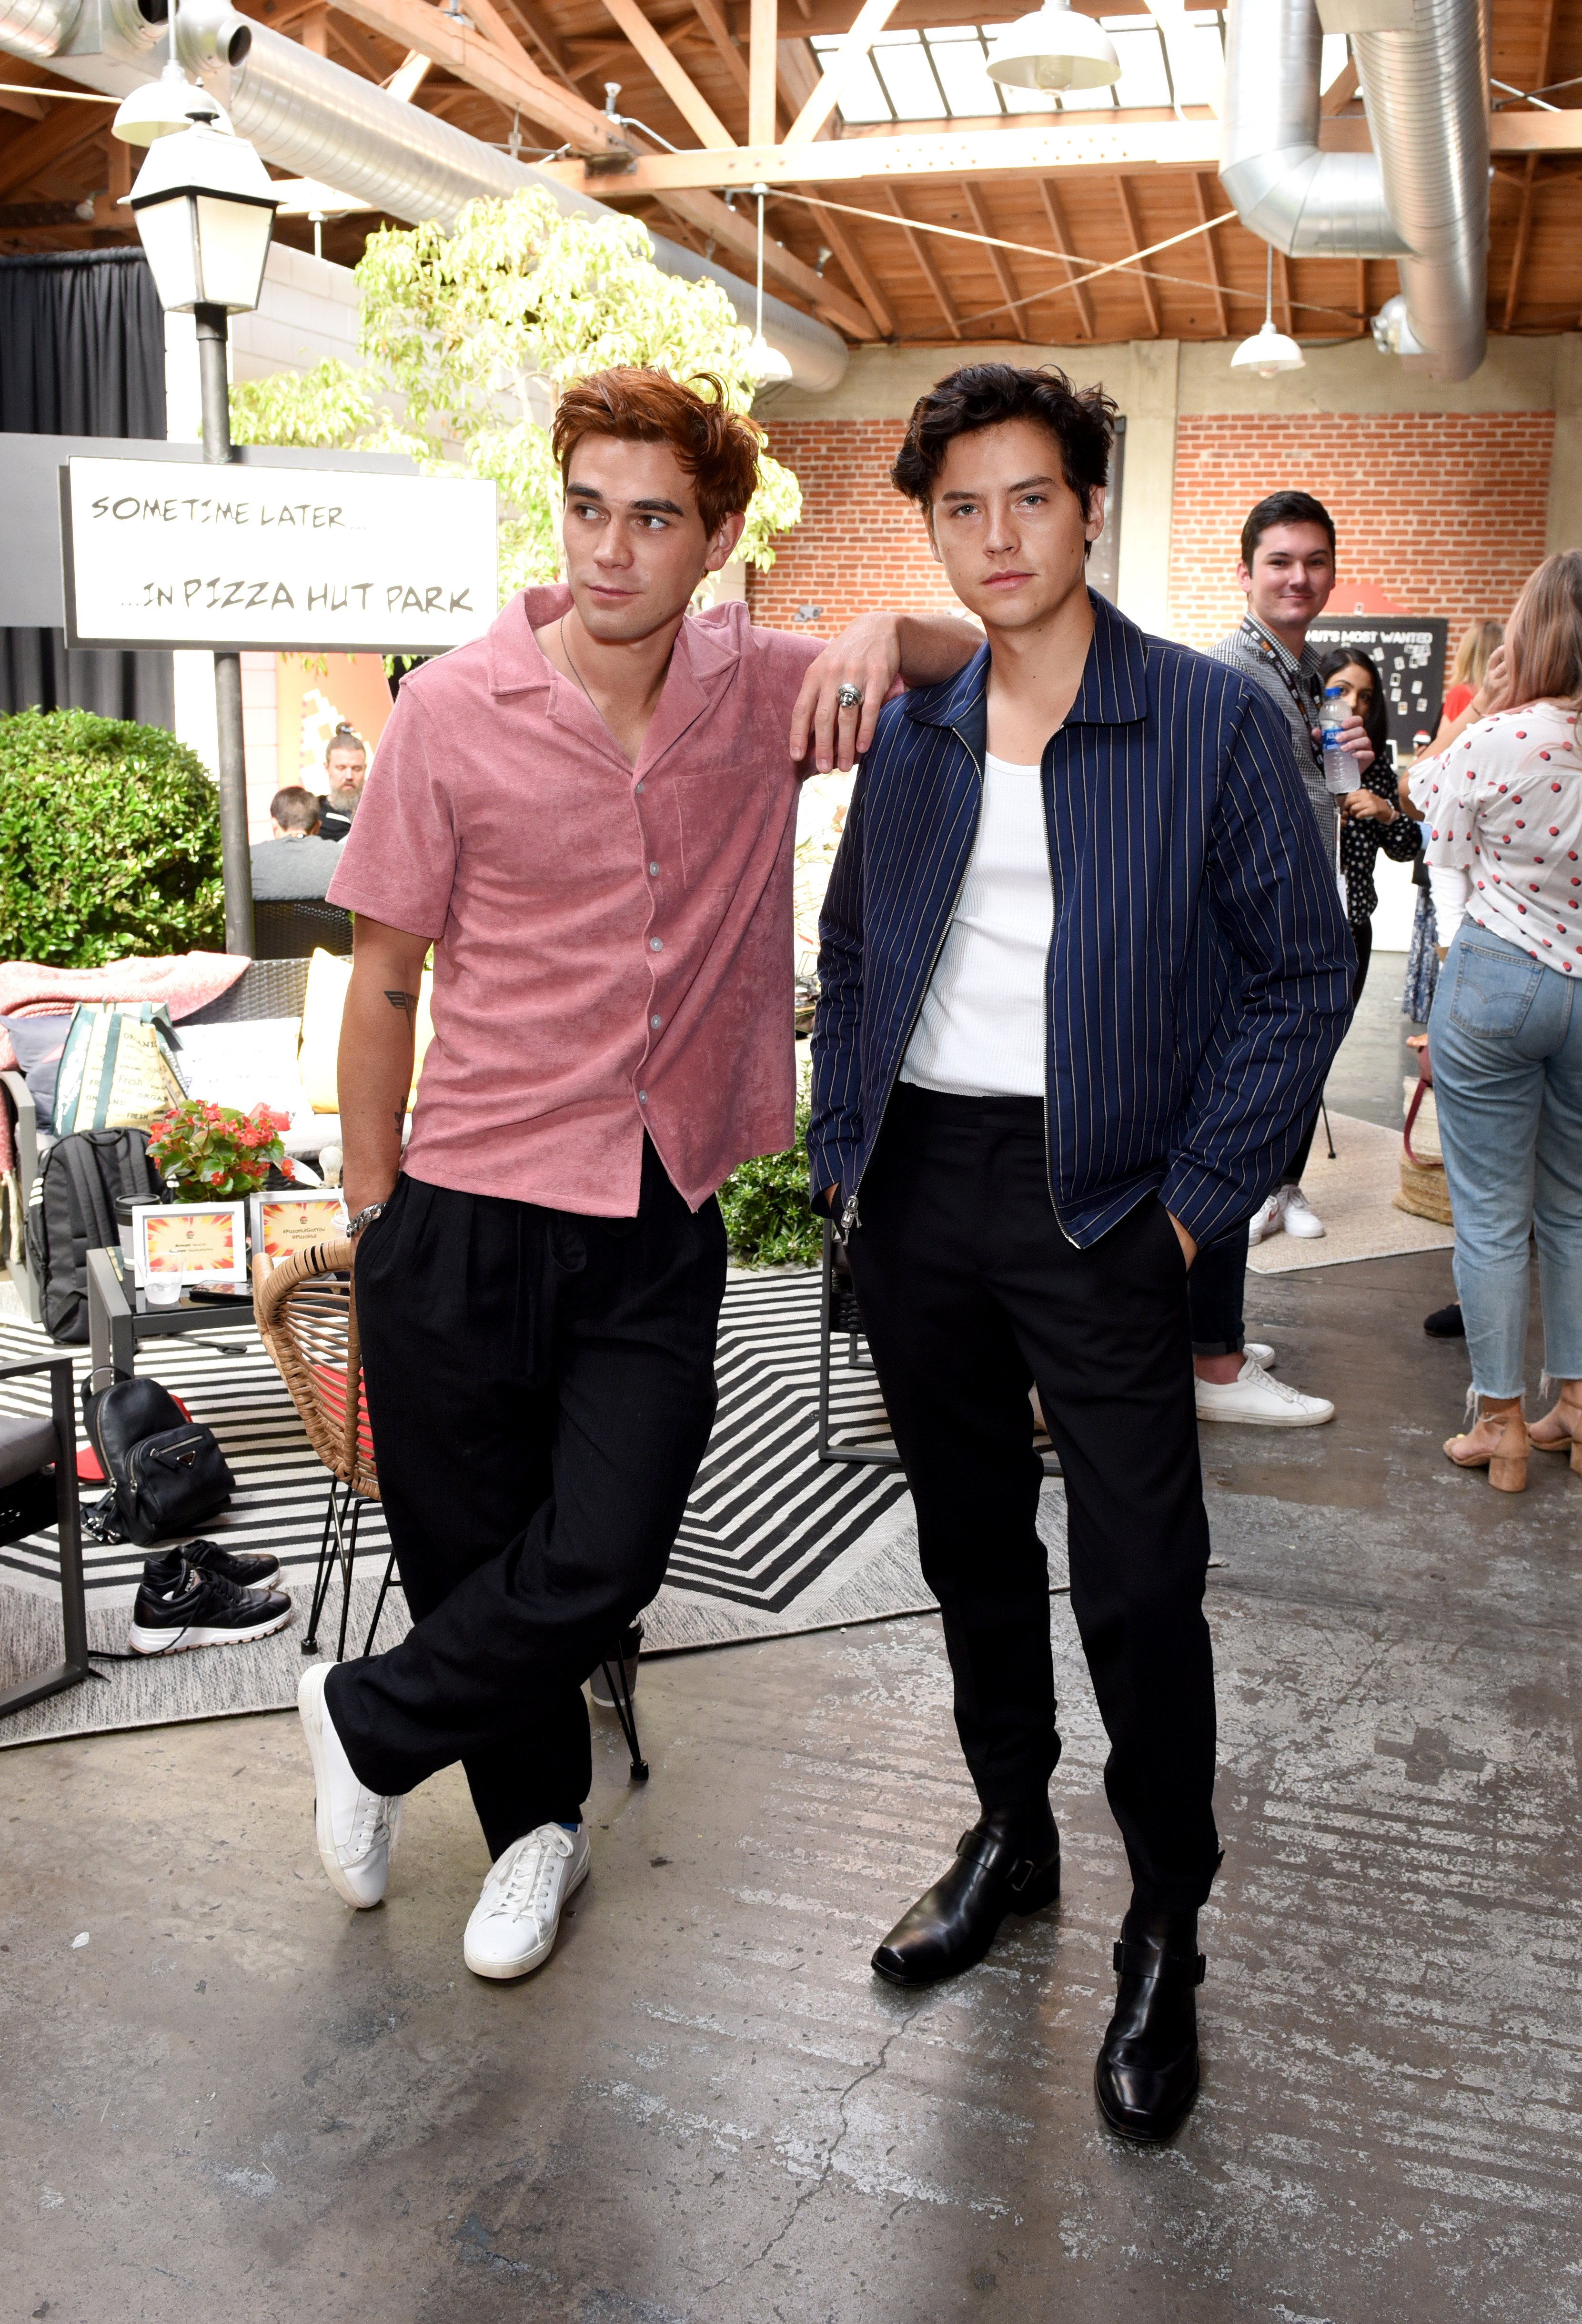 KJ Apa and Cole Spouse pictured at the Pizza Hut Lounge at 2019 Comic-Con International: San Diego, California. | Photo: Getty Images